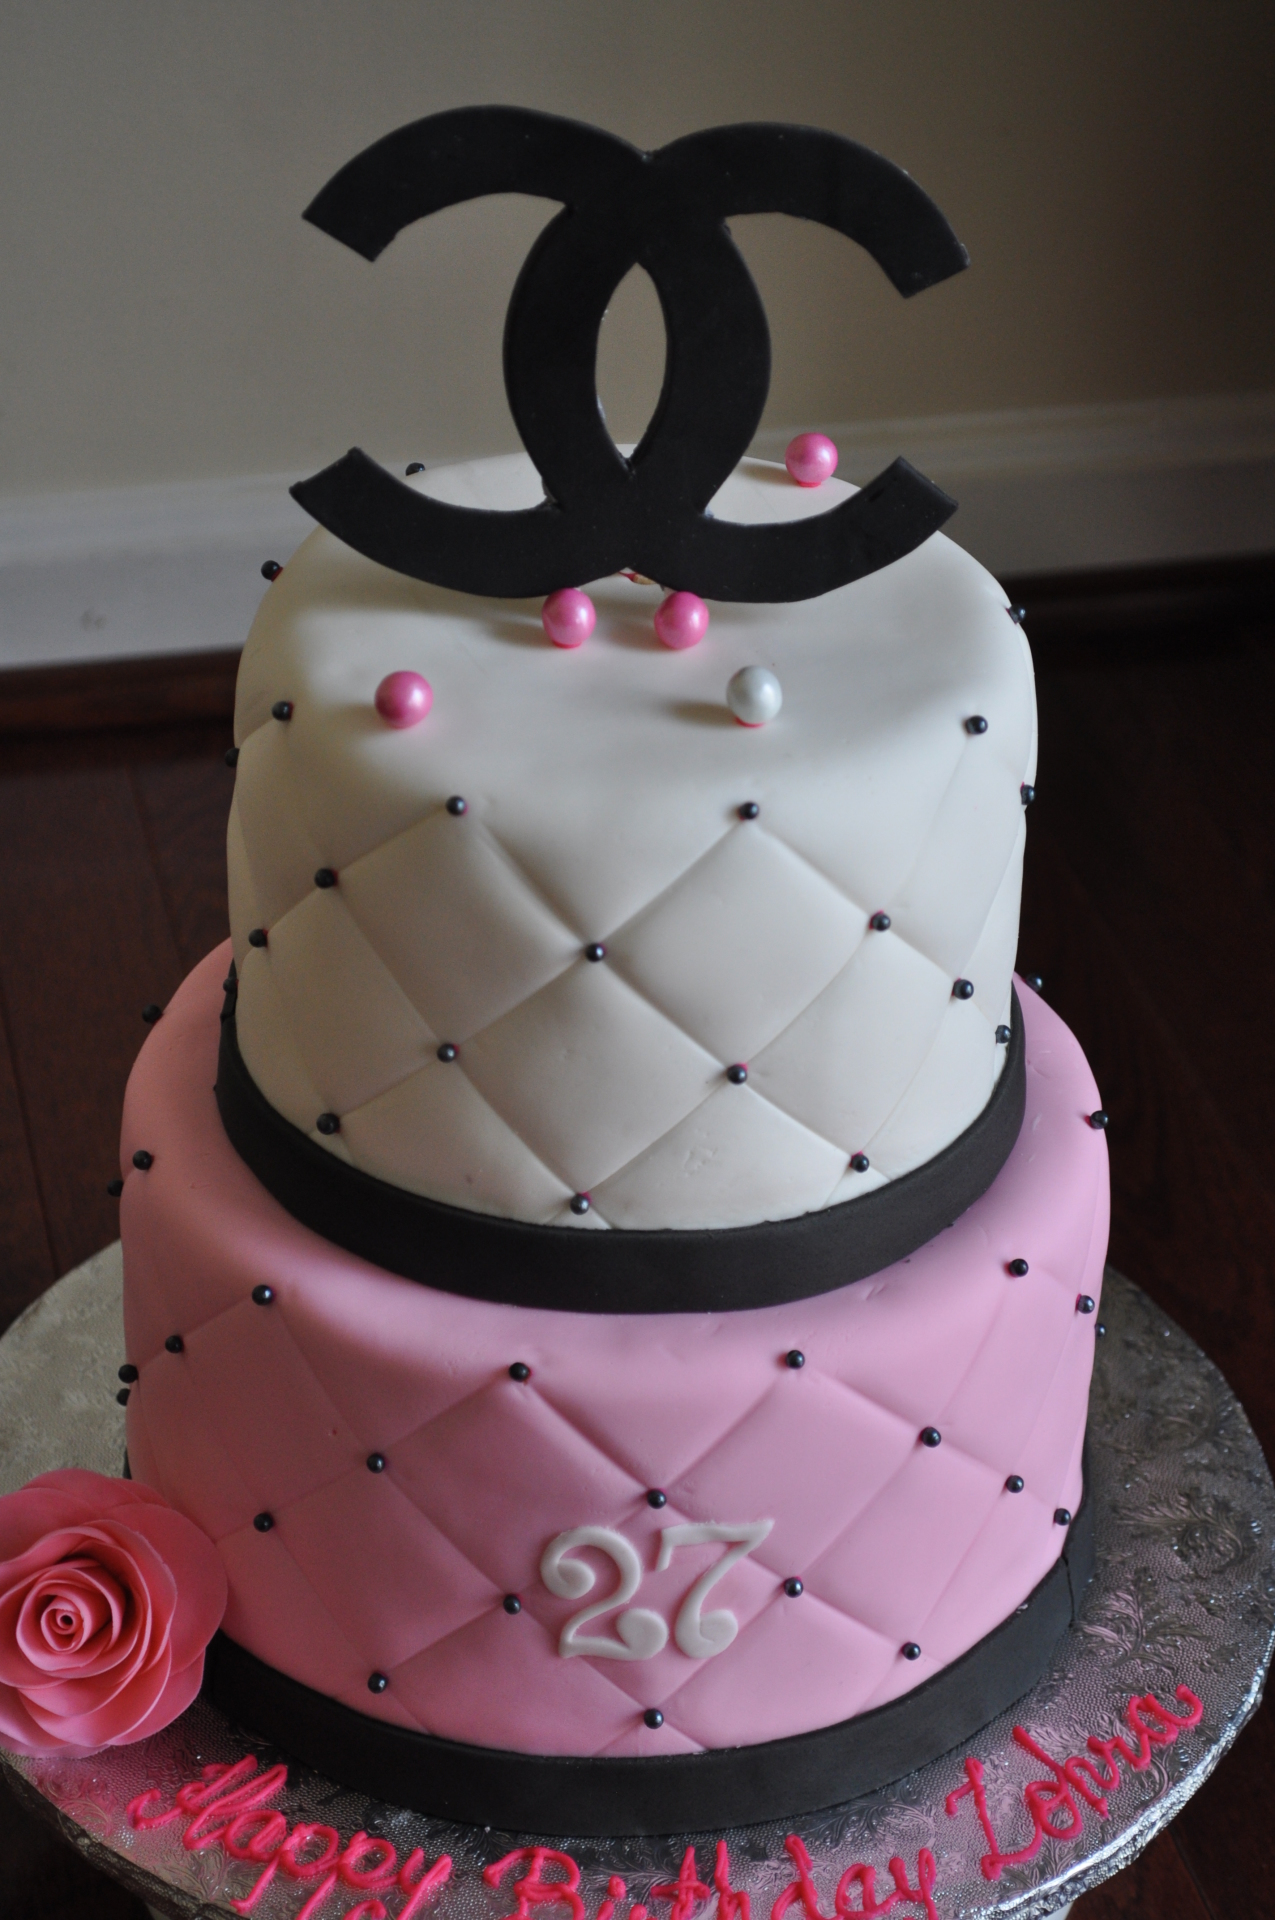 Chanel tiered birthday cake